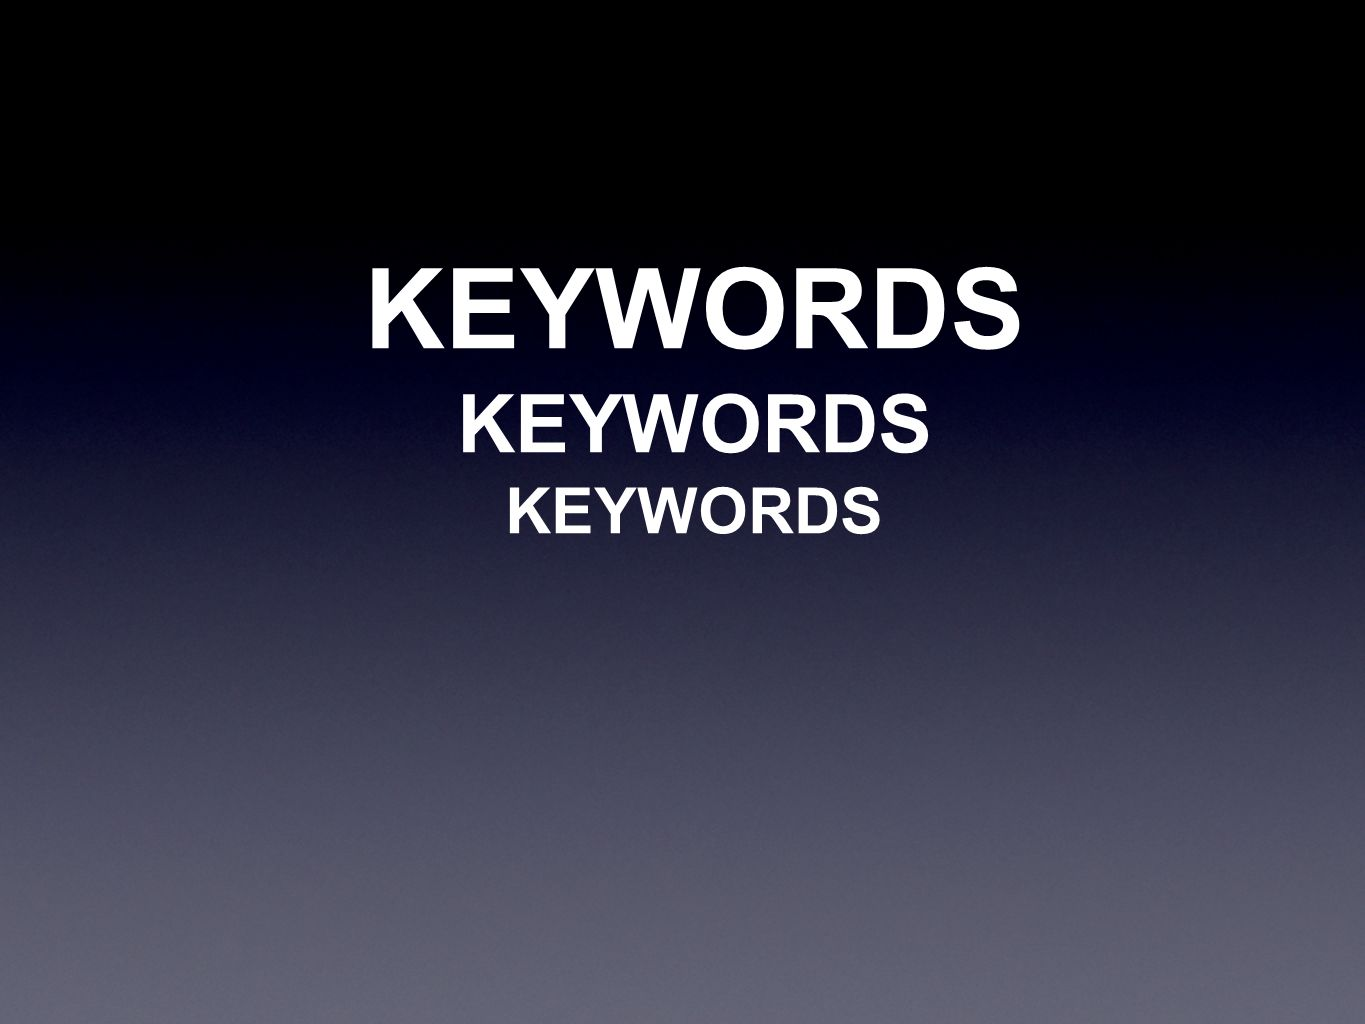 KEYWORDS KEYWORDS KEYWORDS